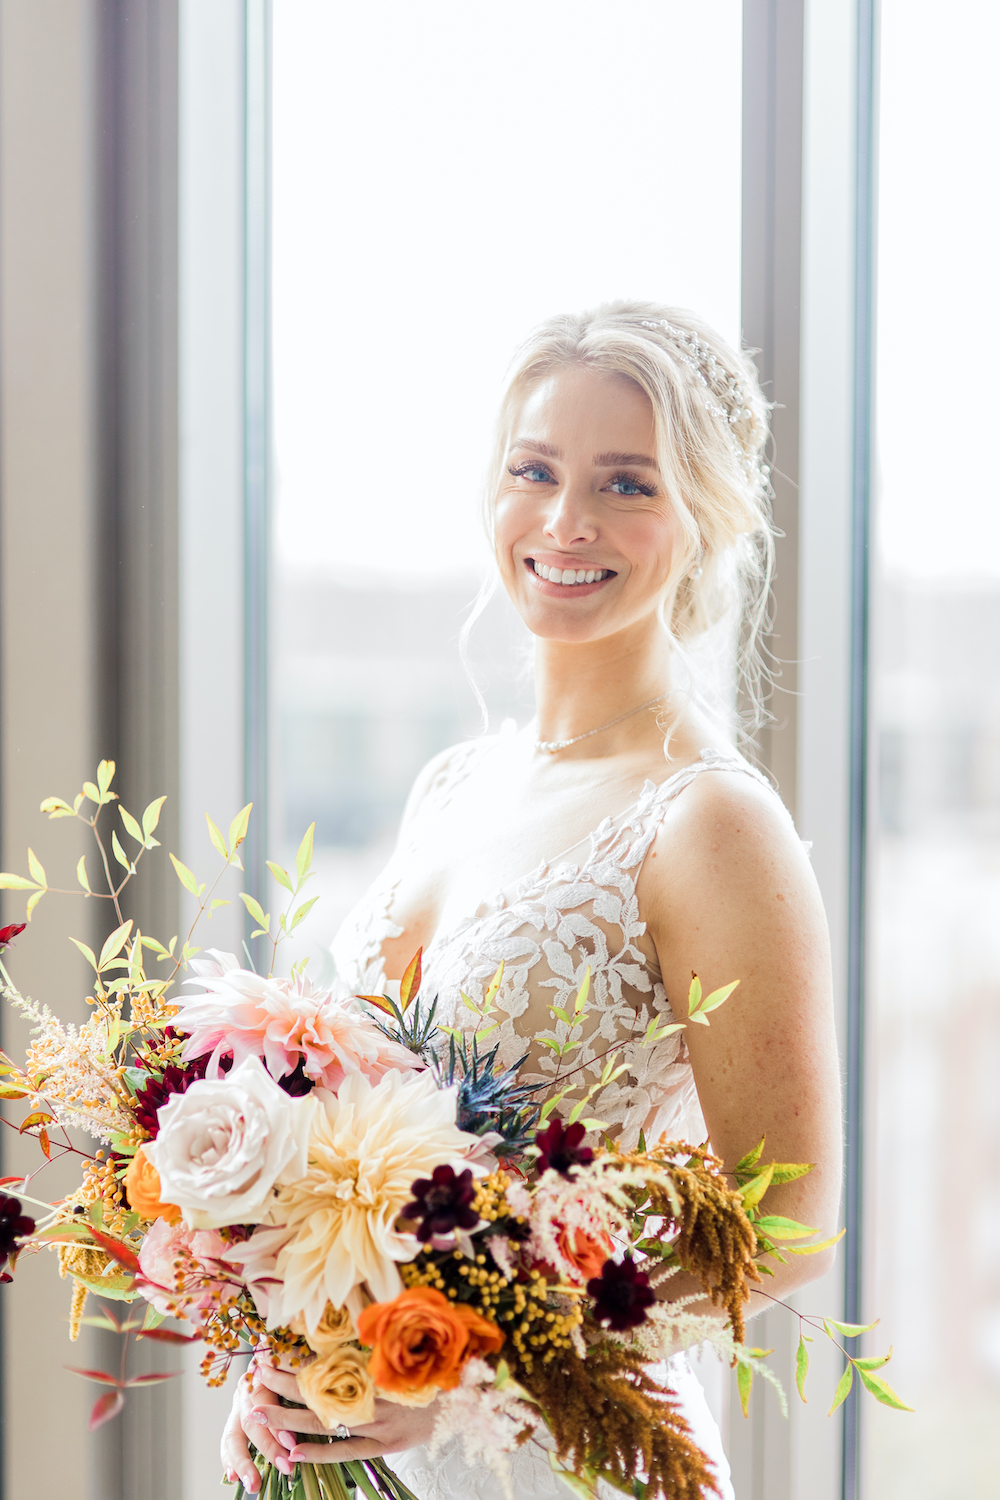 Bride holding her fall floral bouquet with Cafe au Lait dahlias, orange roses, chocolate cosmos, and fall foliage